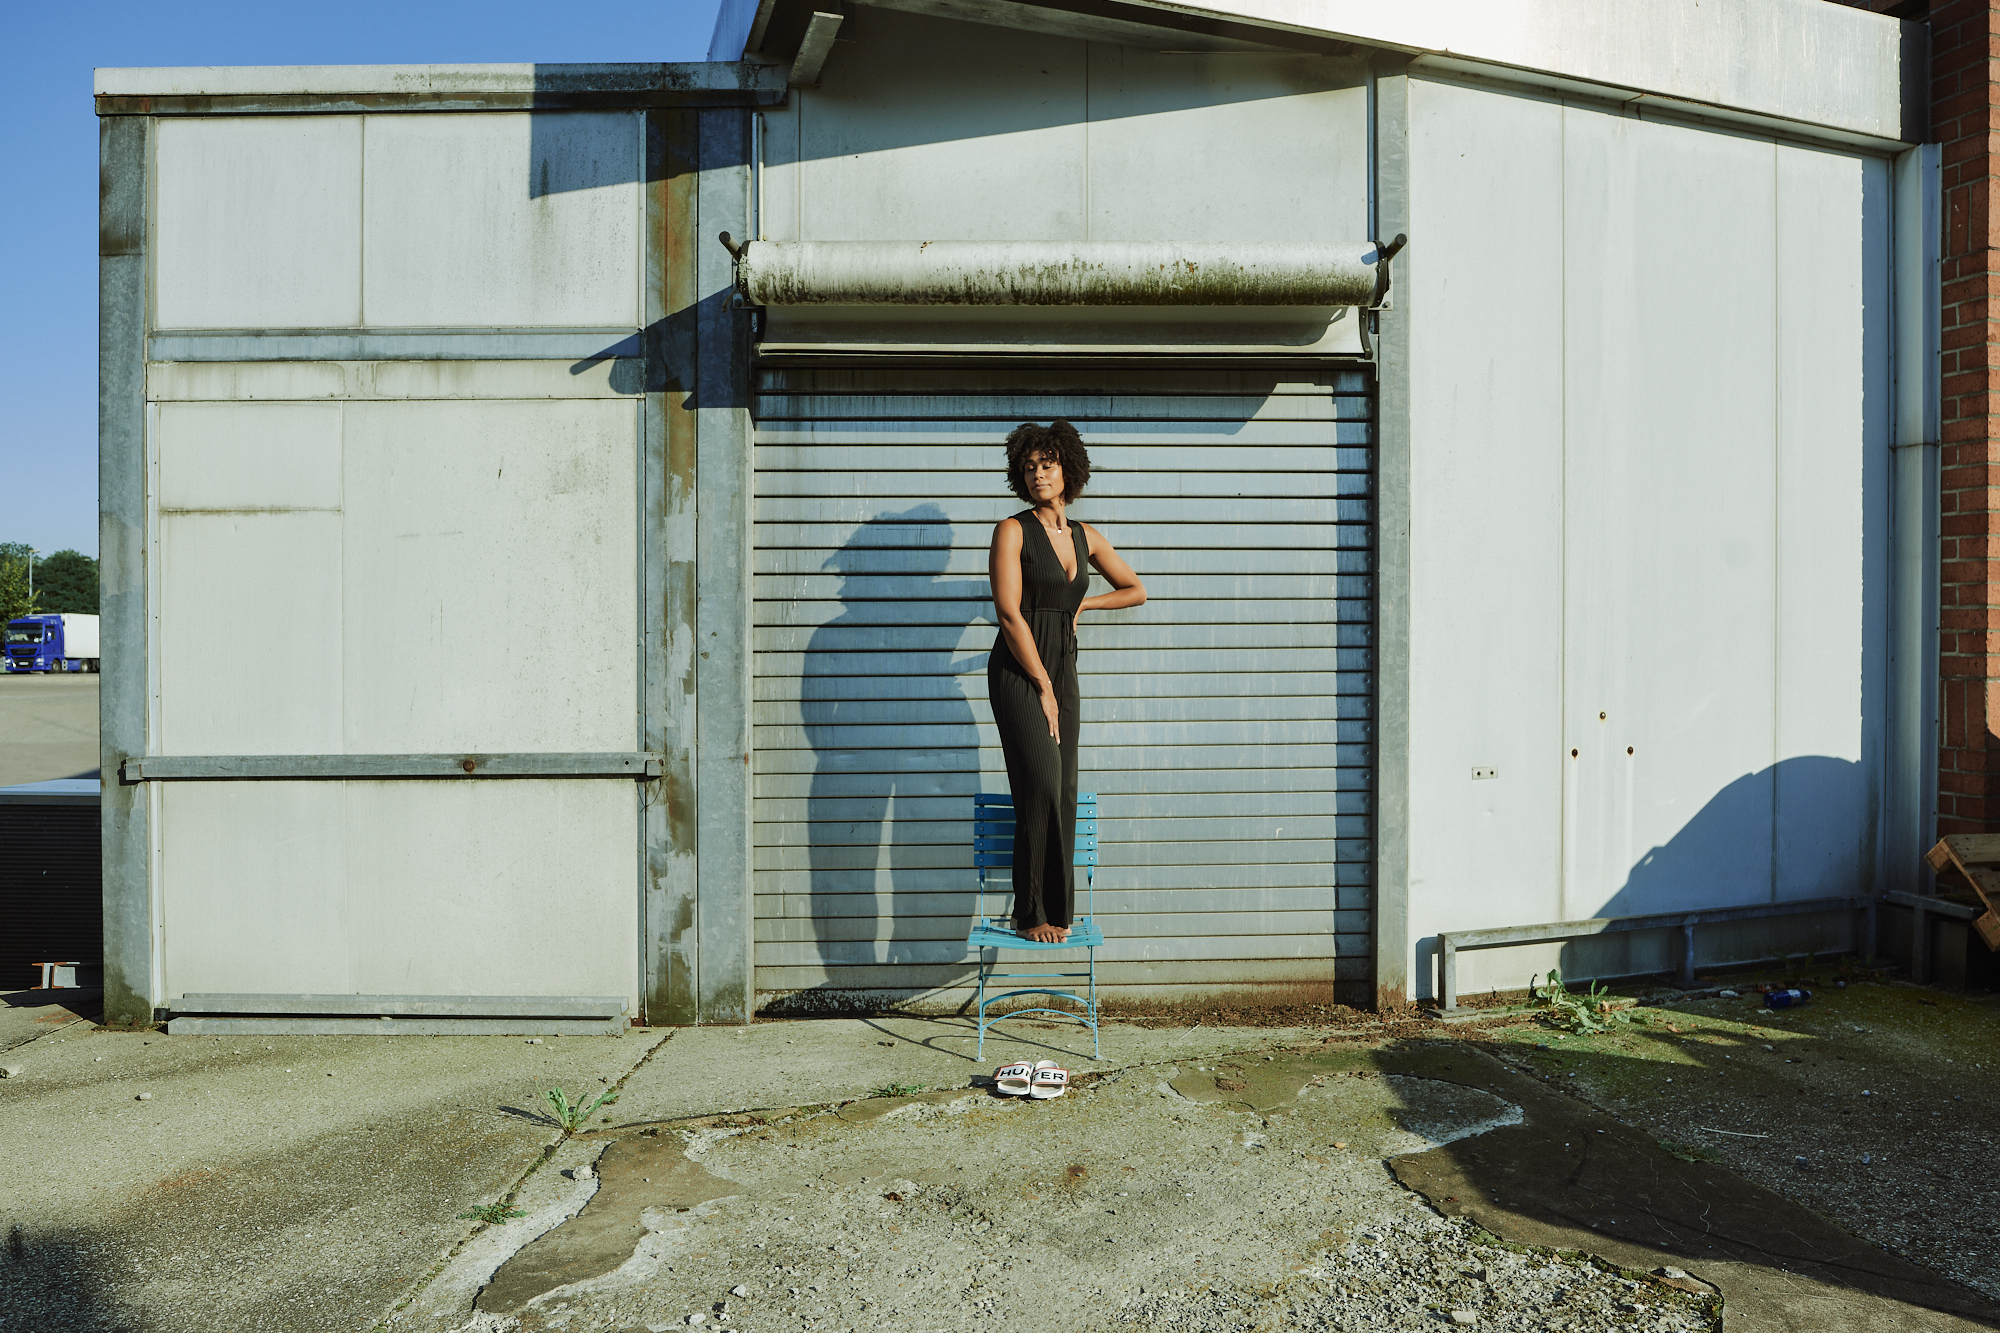 Young black woman poses like a statue in a backyard